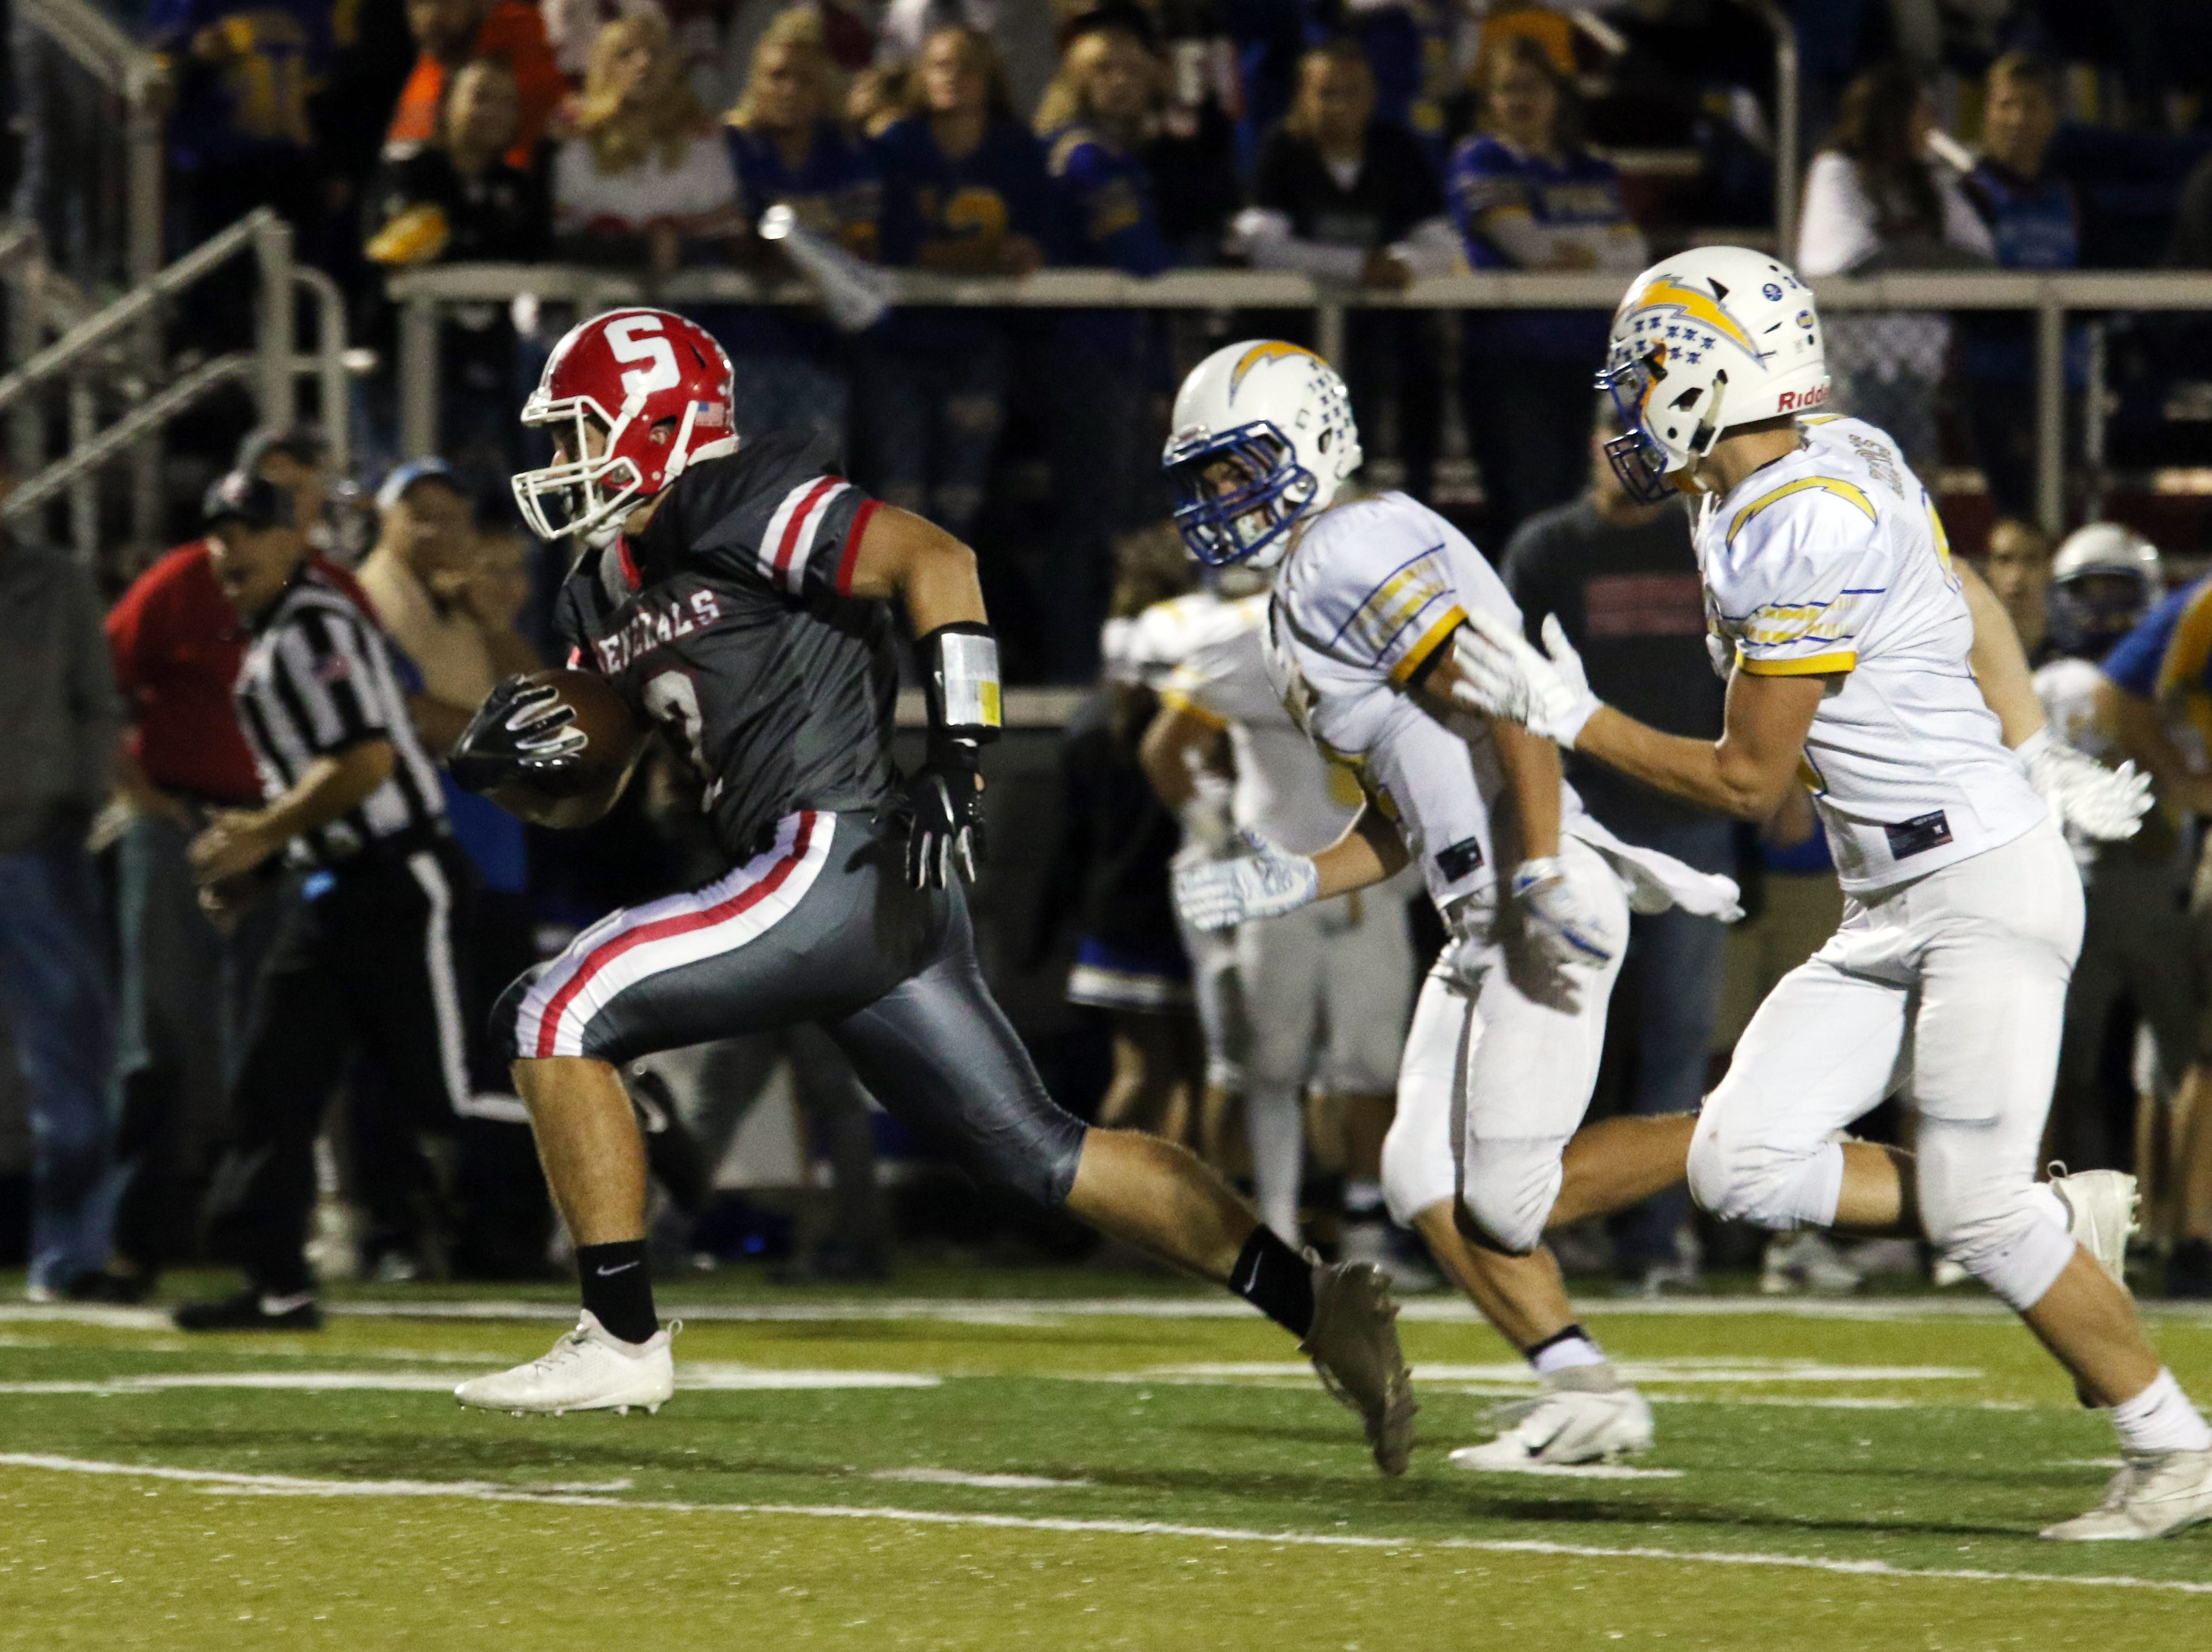 Sheridan's Will Hamilton races toward the endzone for a touchdown againt Philo.